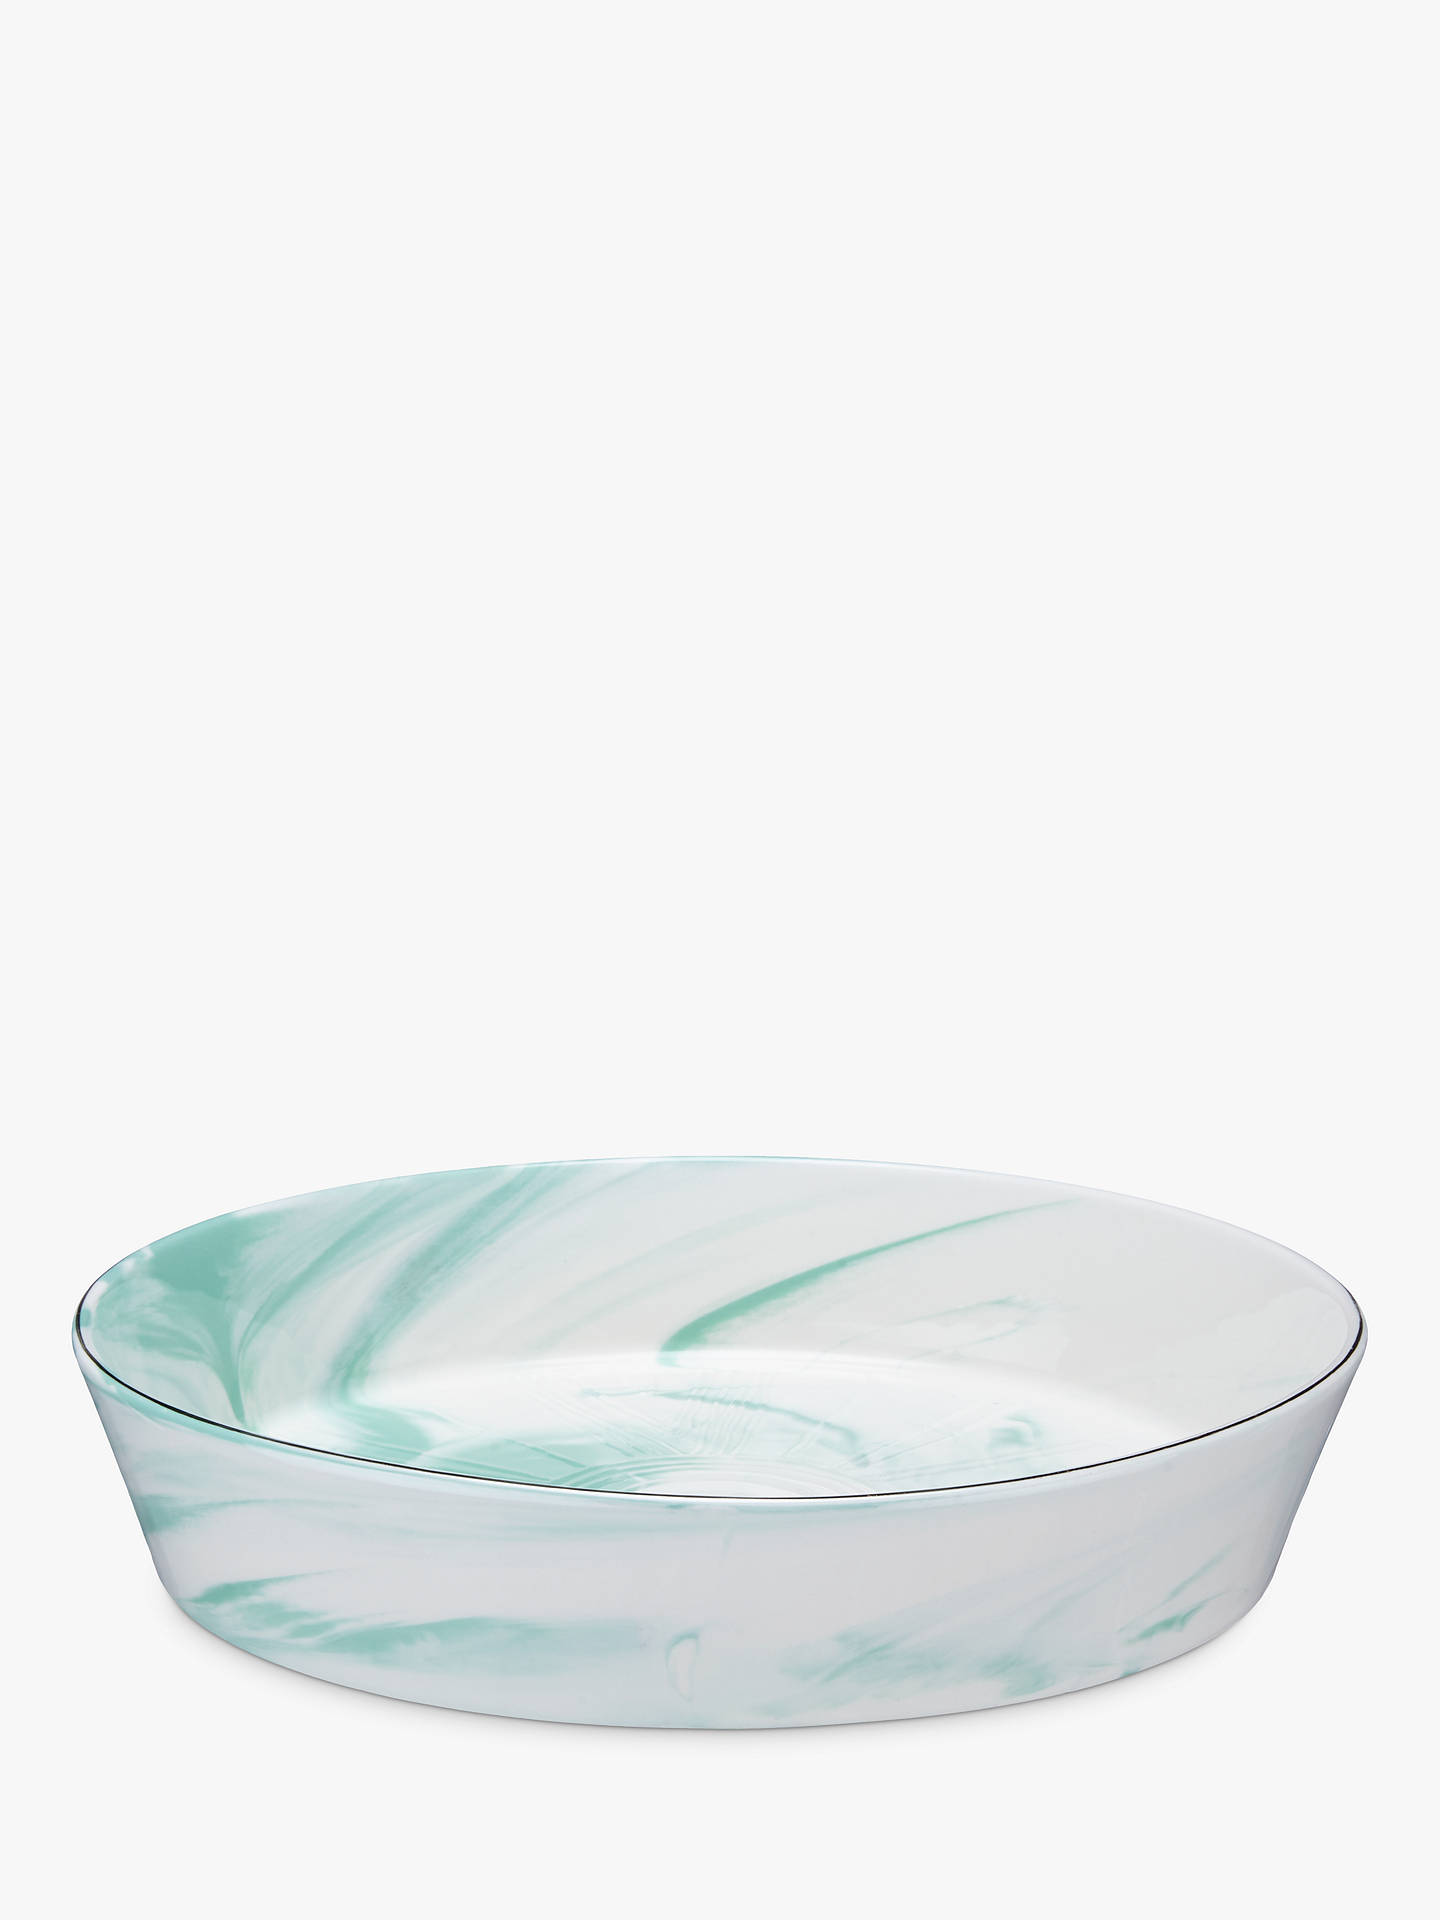 Buy Anthropologie Pippa Pie Dish Online at johnlewis.com